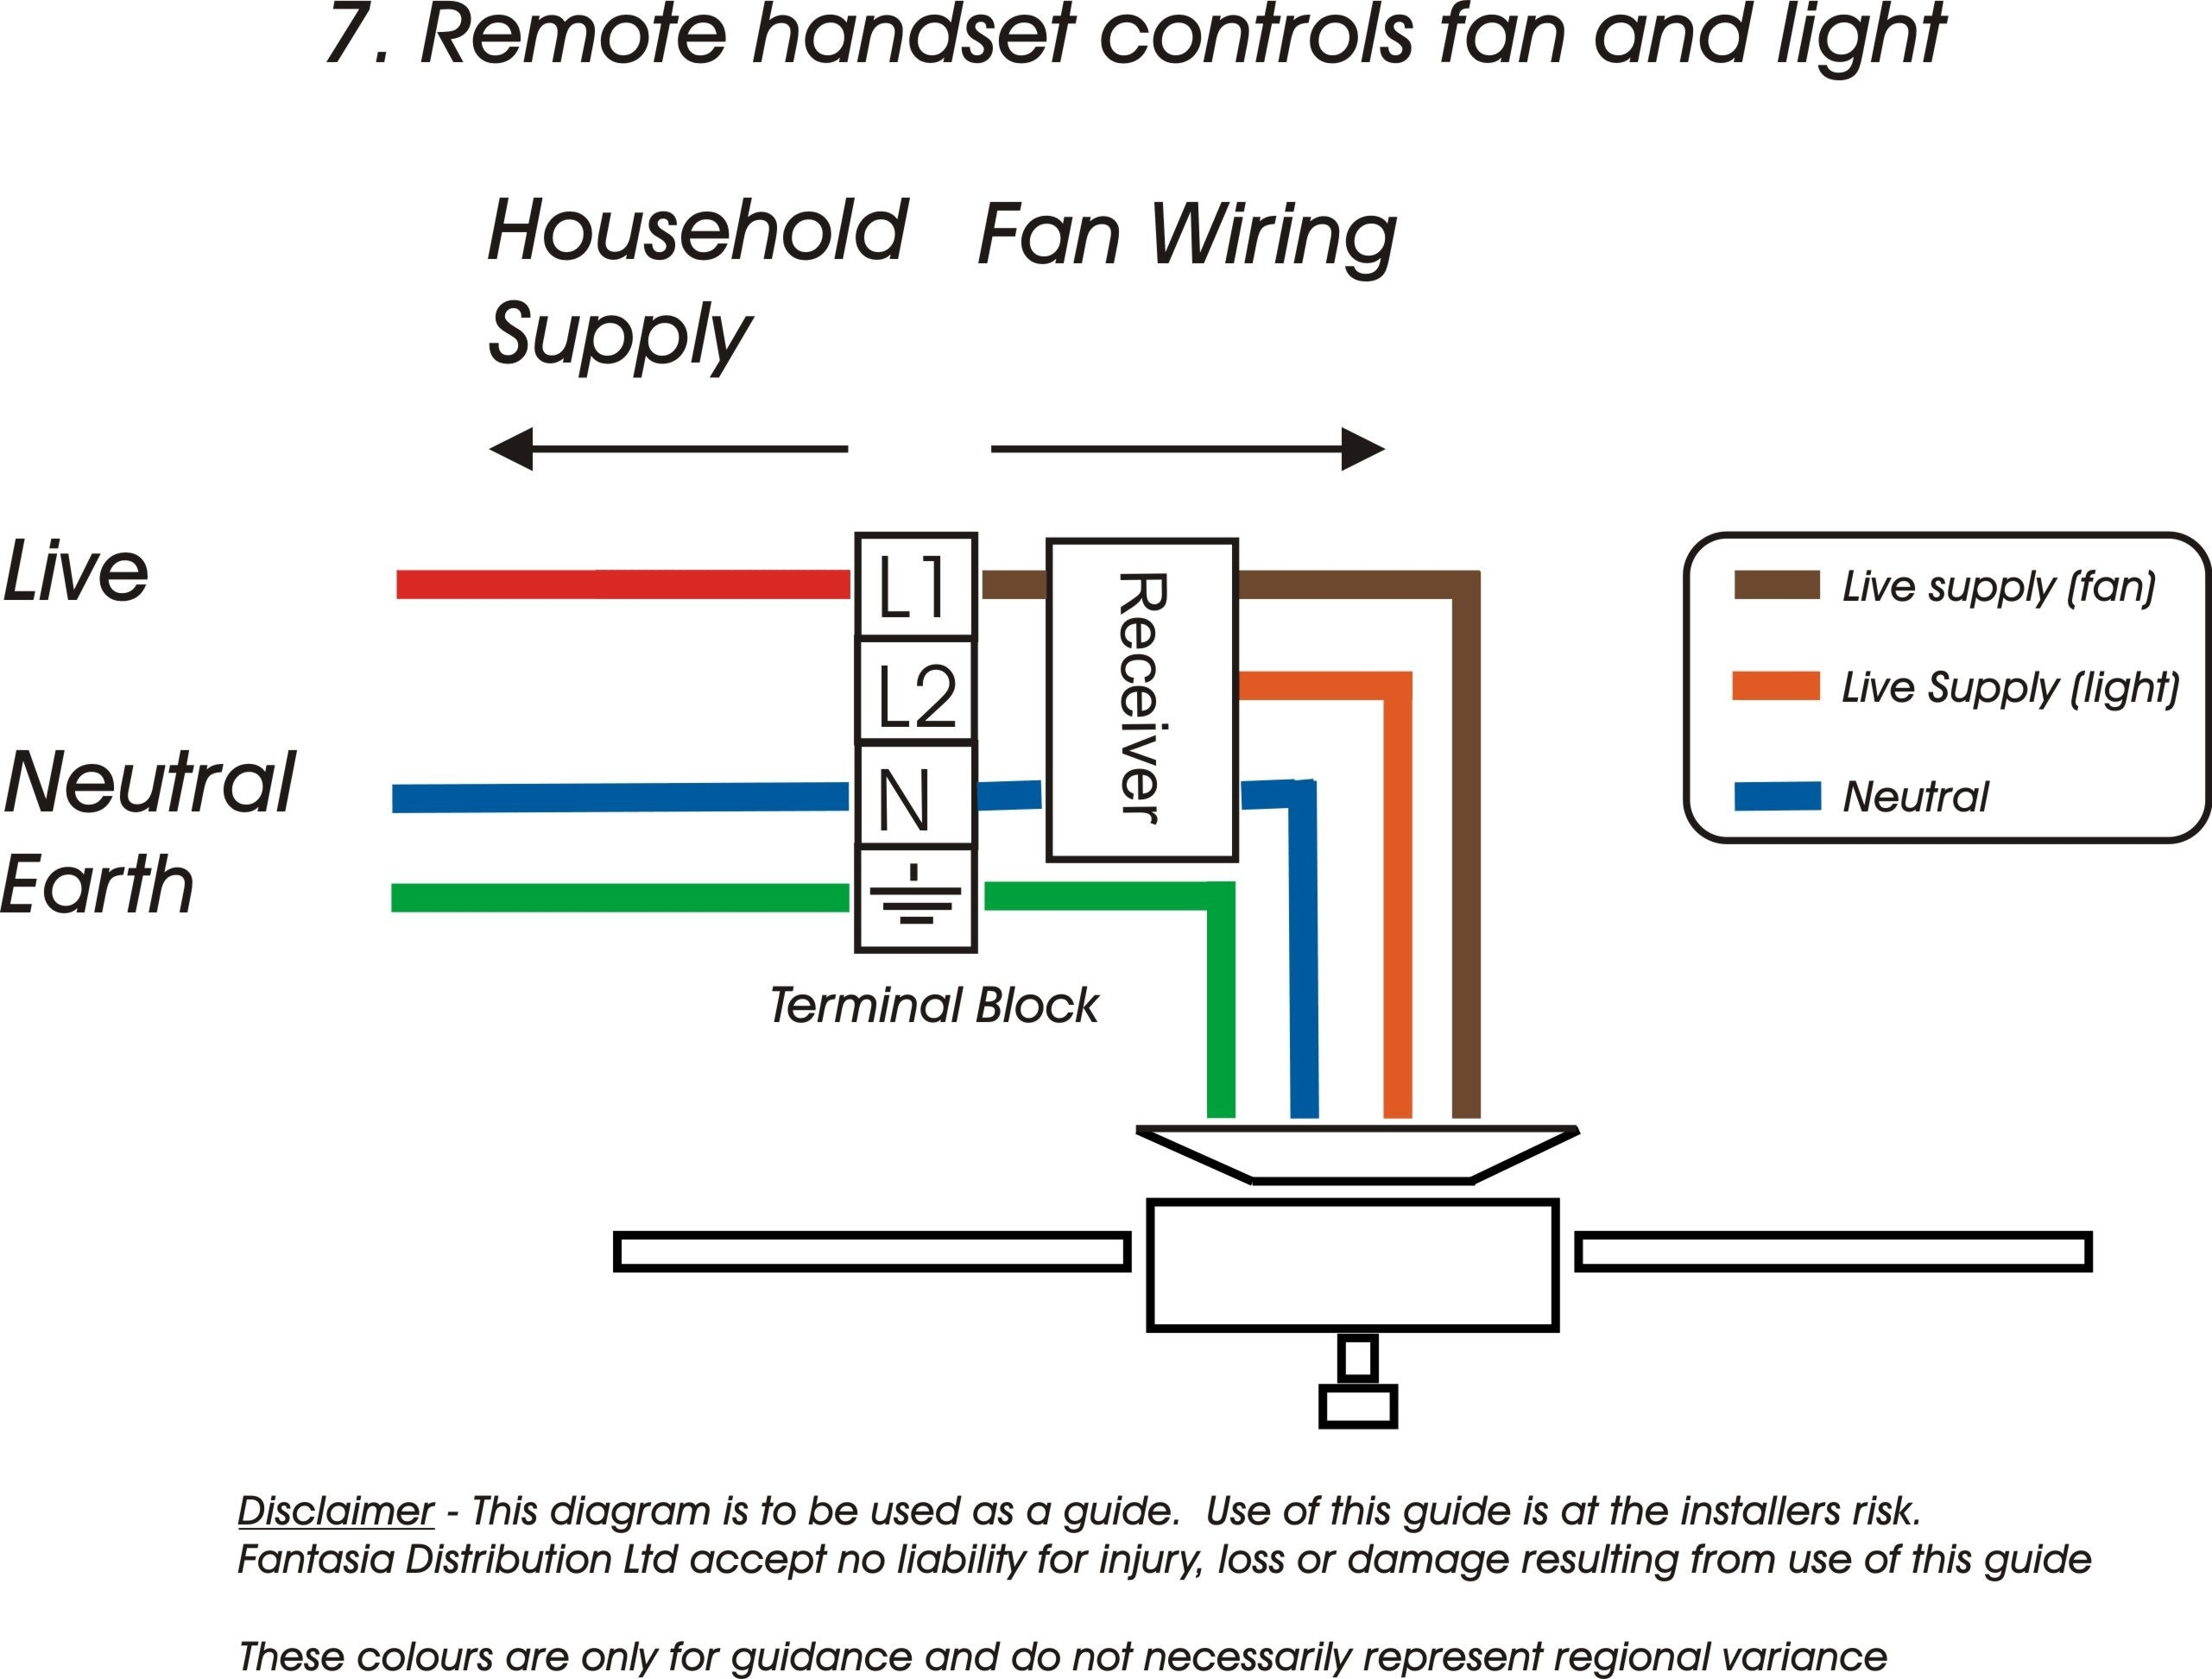 hunter ceiling fan wiring diagram with remote control Download-Wiring Diagram for Hunter Remote Control Ceiling Fan New Install Hunter Ceiling Fan Remote Control Tulumsender 3-o